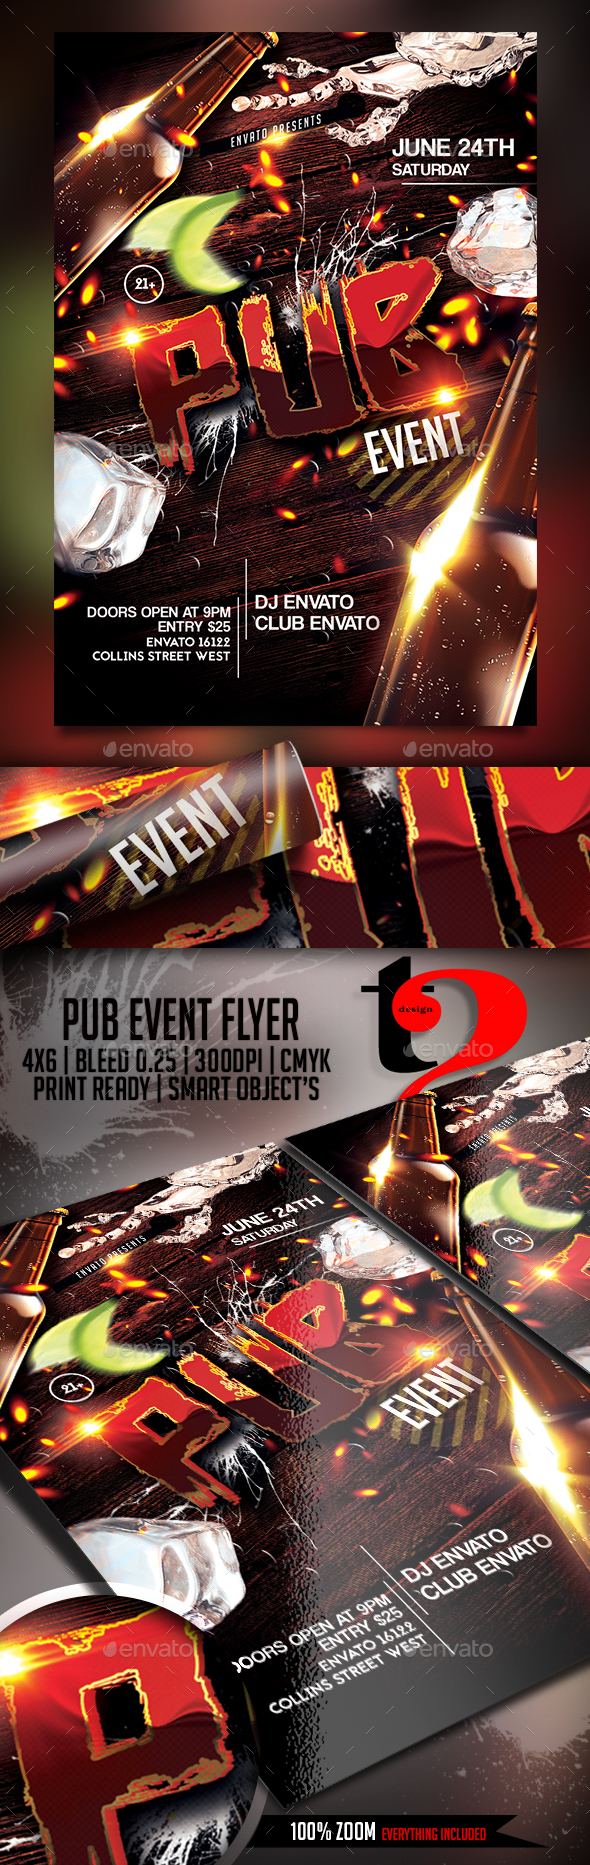 Pub Event Flyer Template - Clubs & Parties Events